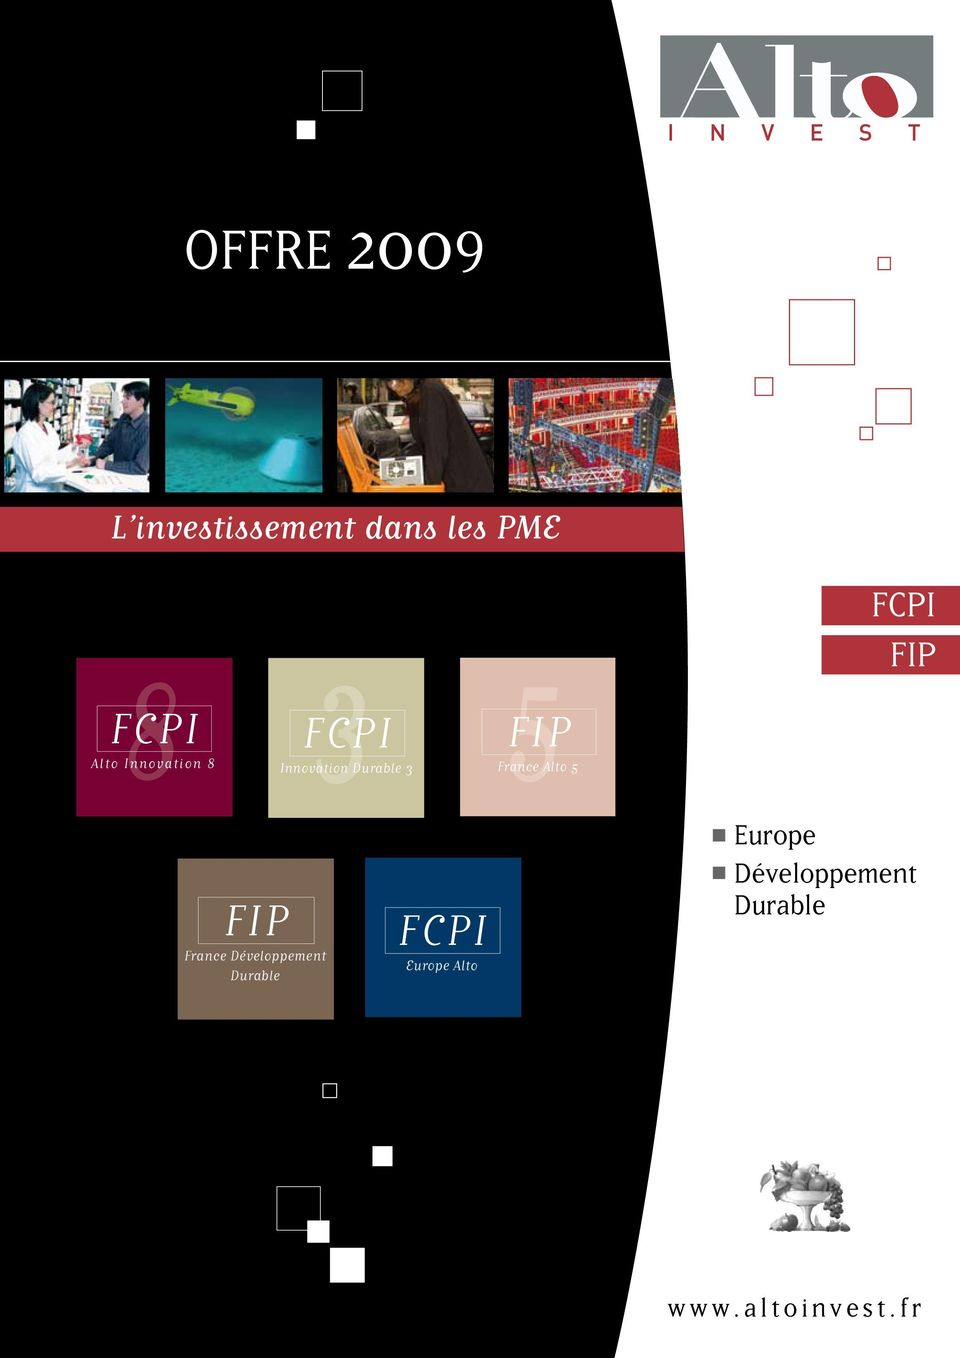 Innovation Durable 3 Europe Alto 5 FIP France